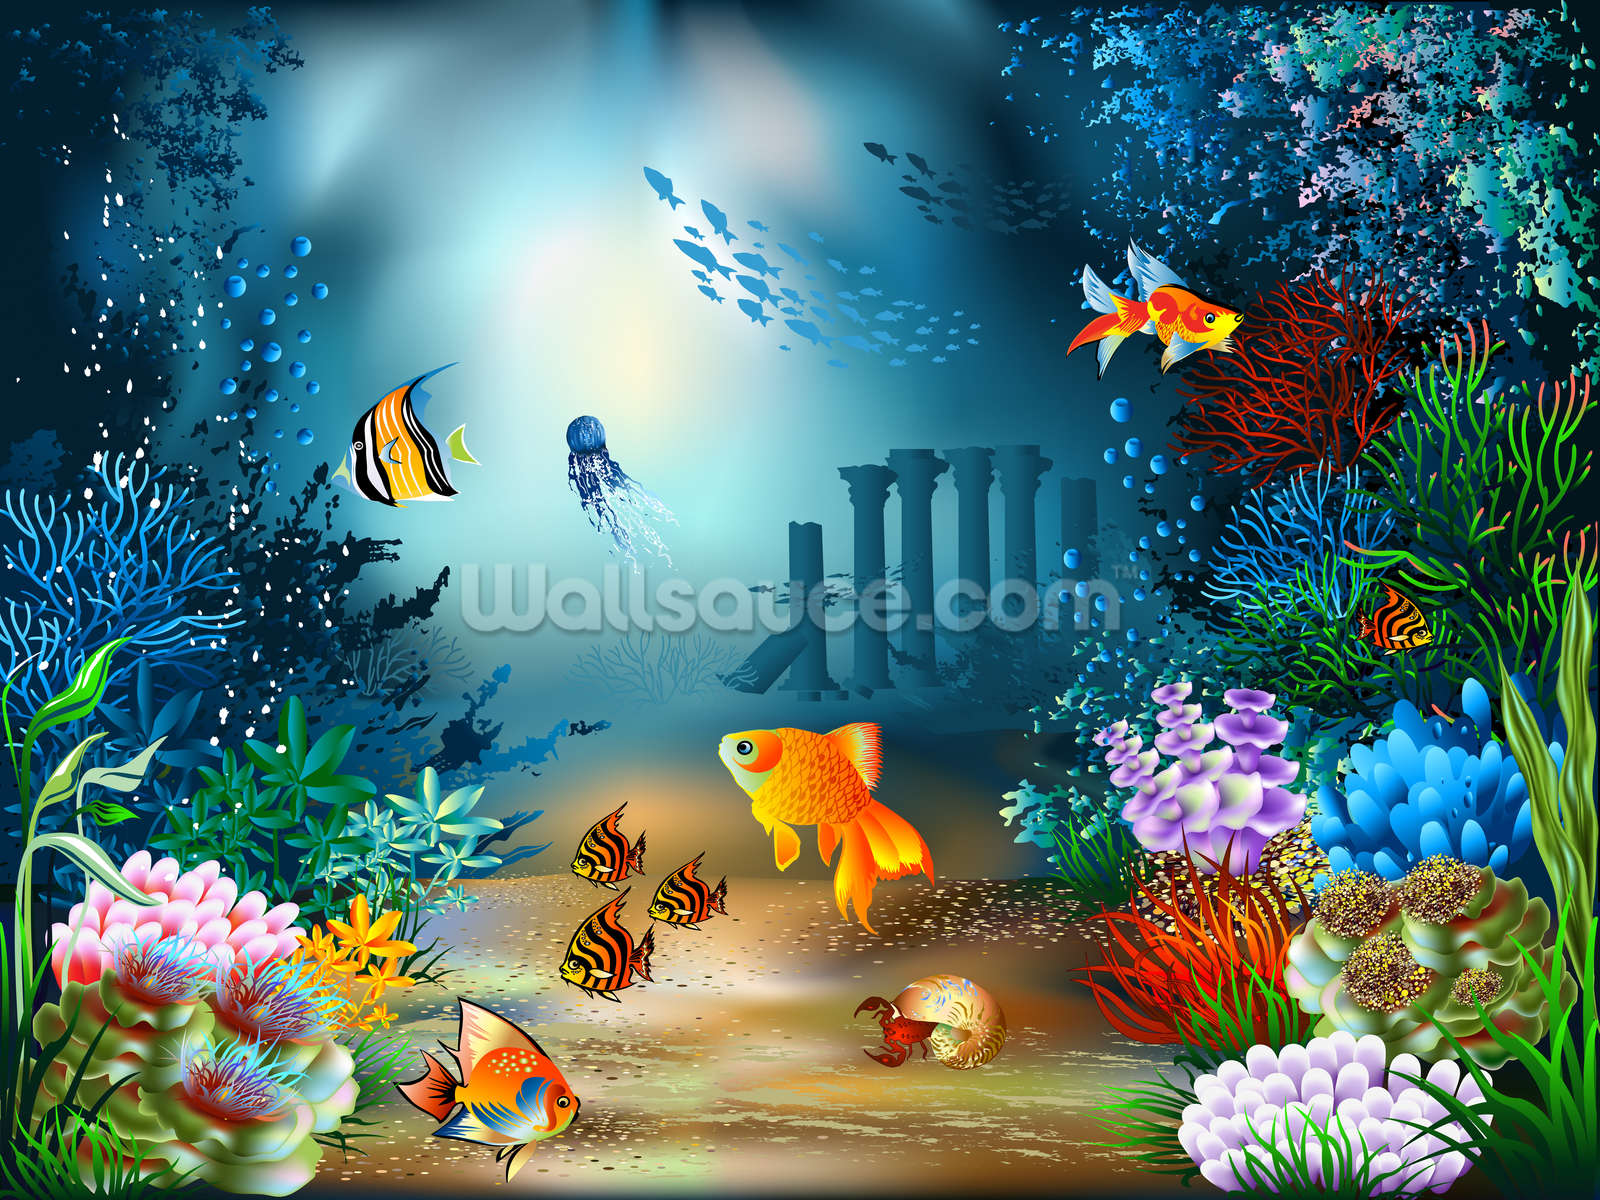 tropical fish wallpaper sea life wall murals wallsauce usa underwater world wall mural